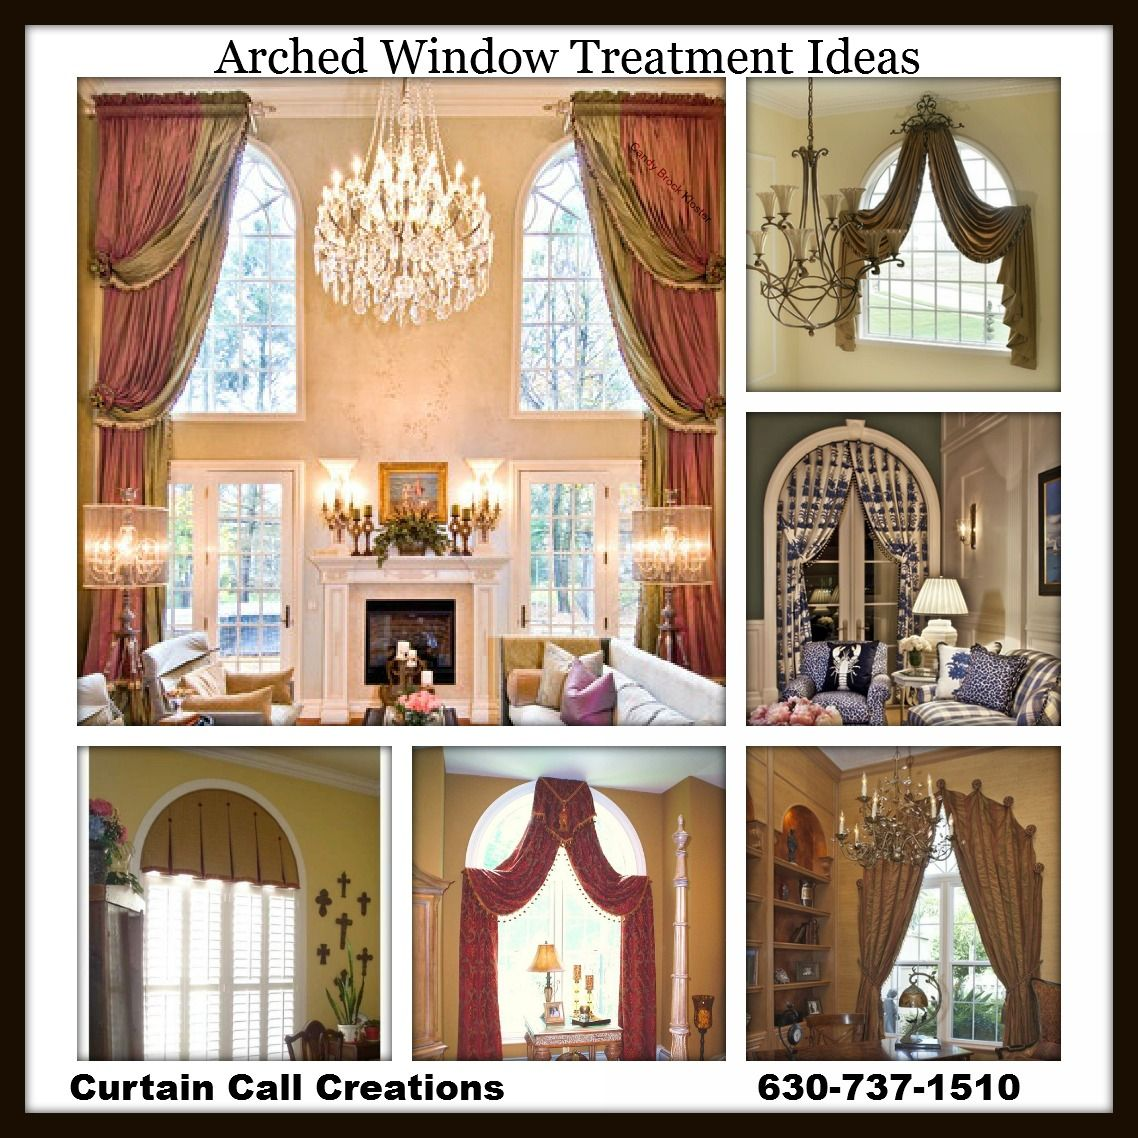 Spannende Fensterdeko Gardinen Ideen Erlene Window Treatments Arched Window Treatment Ideas Bottom Middle Pic For Two